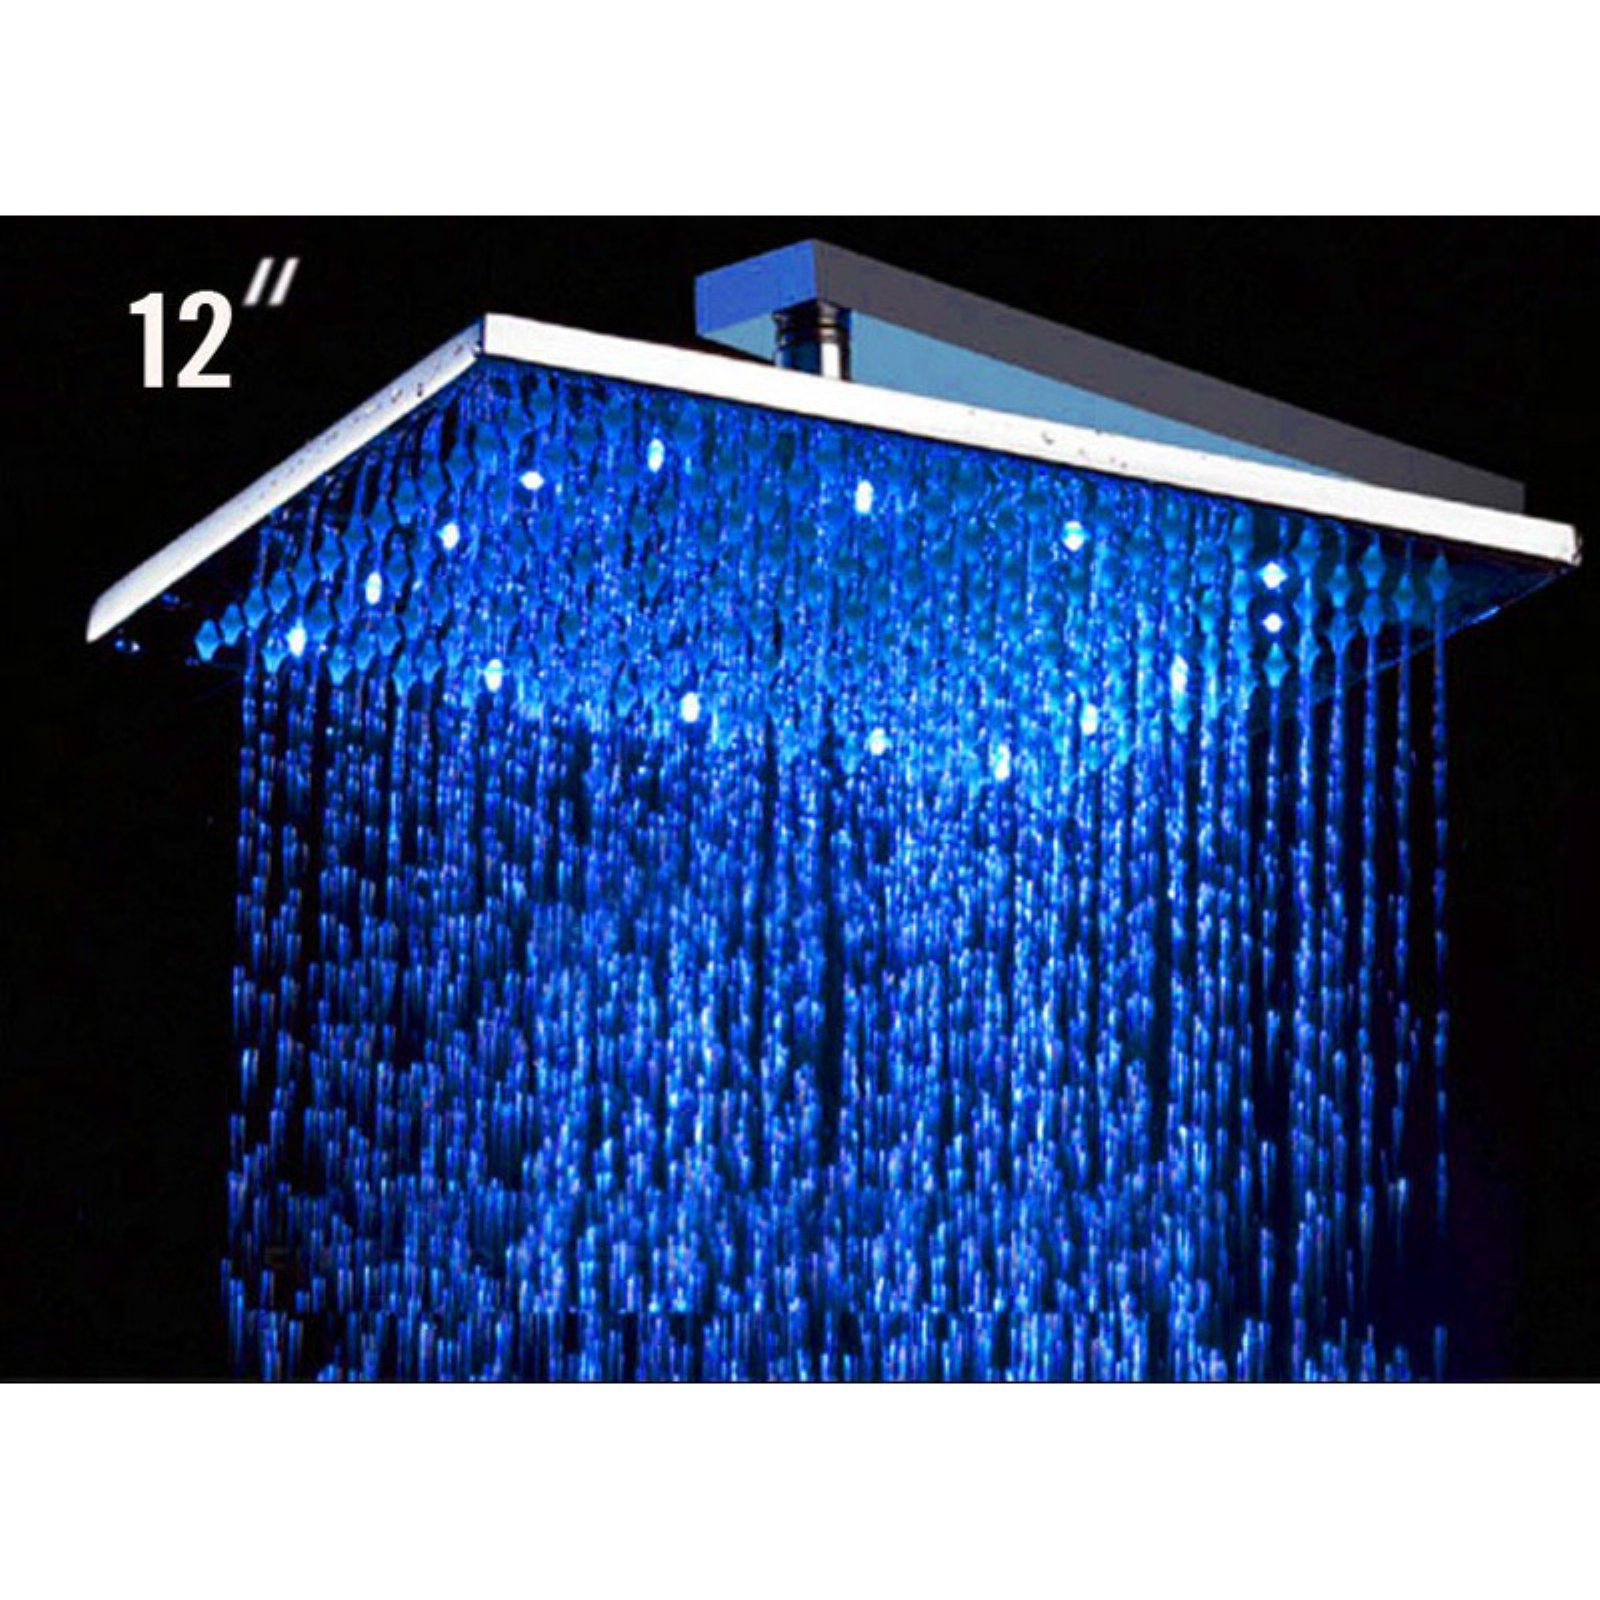 ALFI brand LED5008 12 Inch Square Multi Color LED Rain Shower Head ...